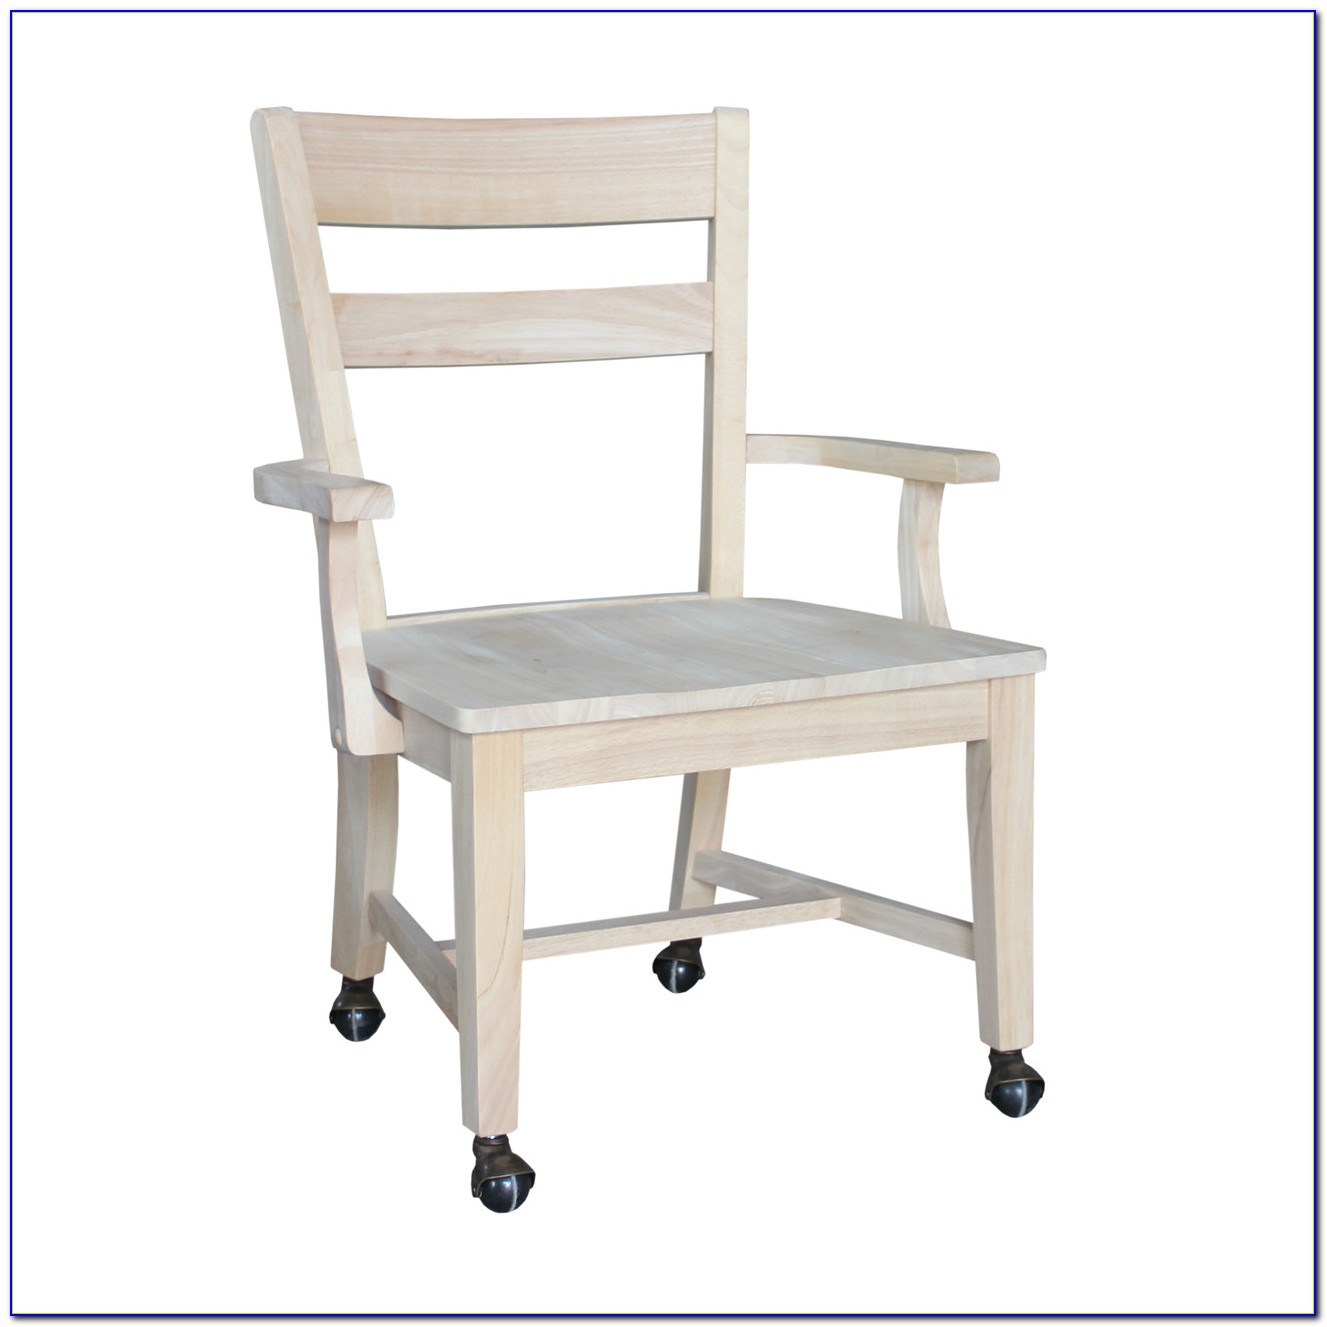 K Care Utility Chair Desk Arms